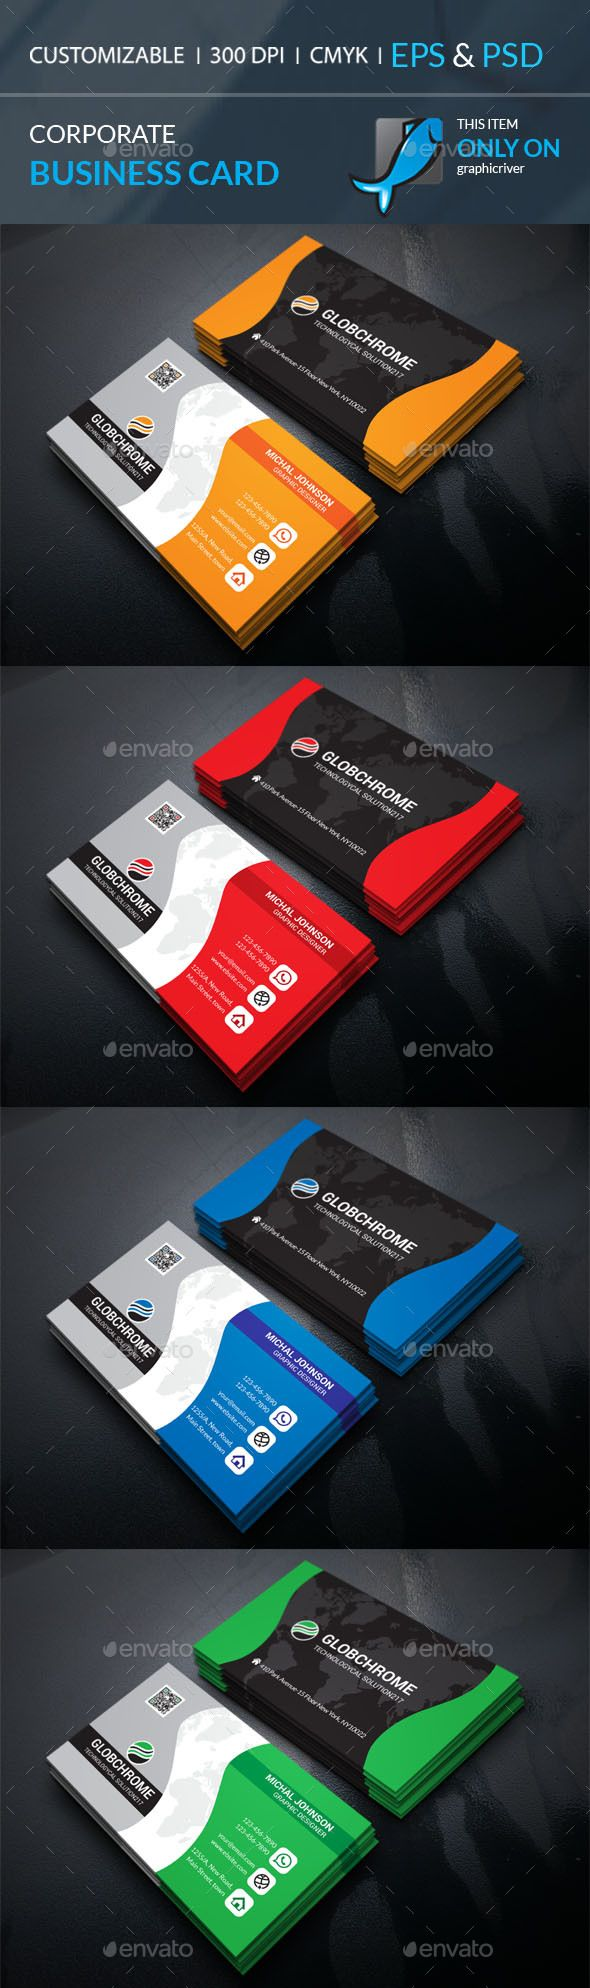 Corporate business card template psd vector eps ai illustrator corporate business card template psd vector eps ai illustrator accmission Image collections